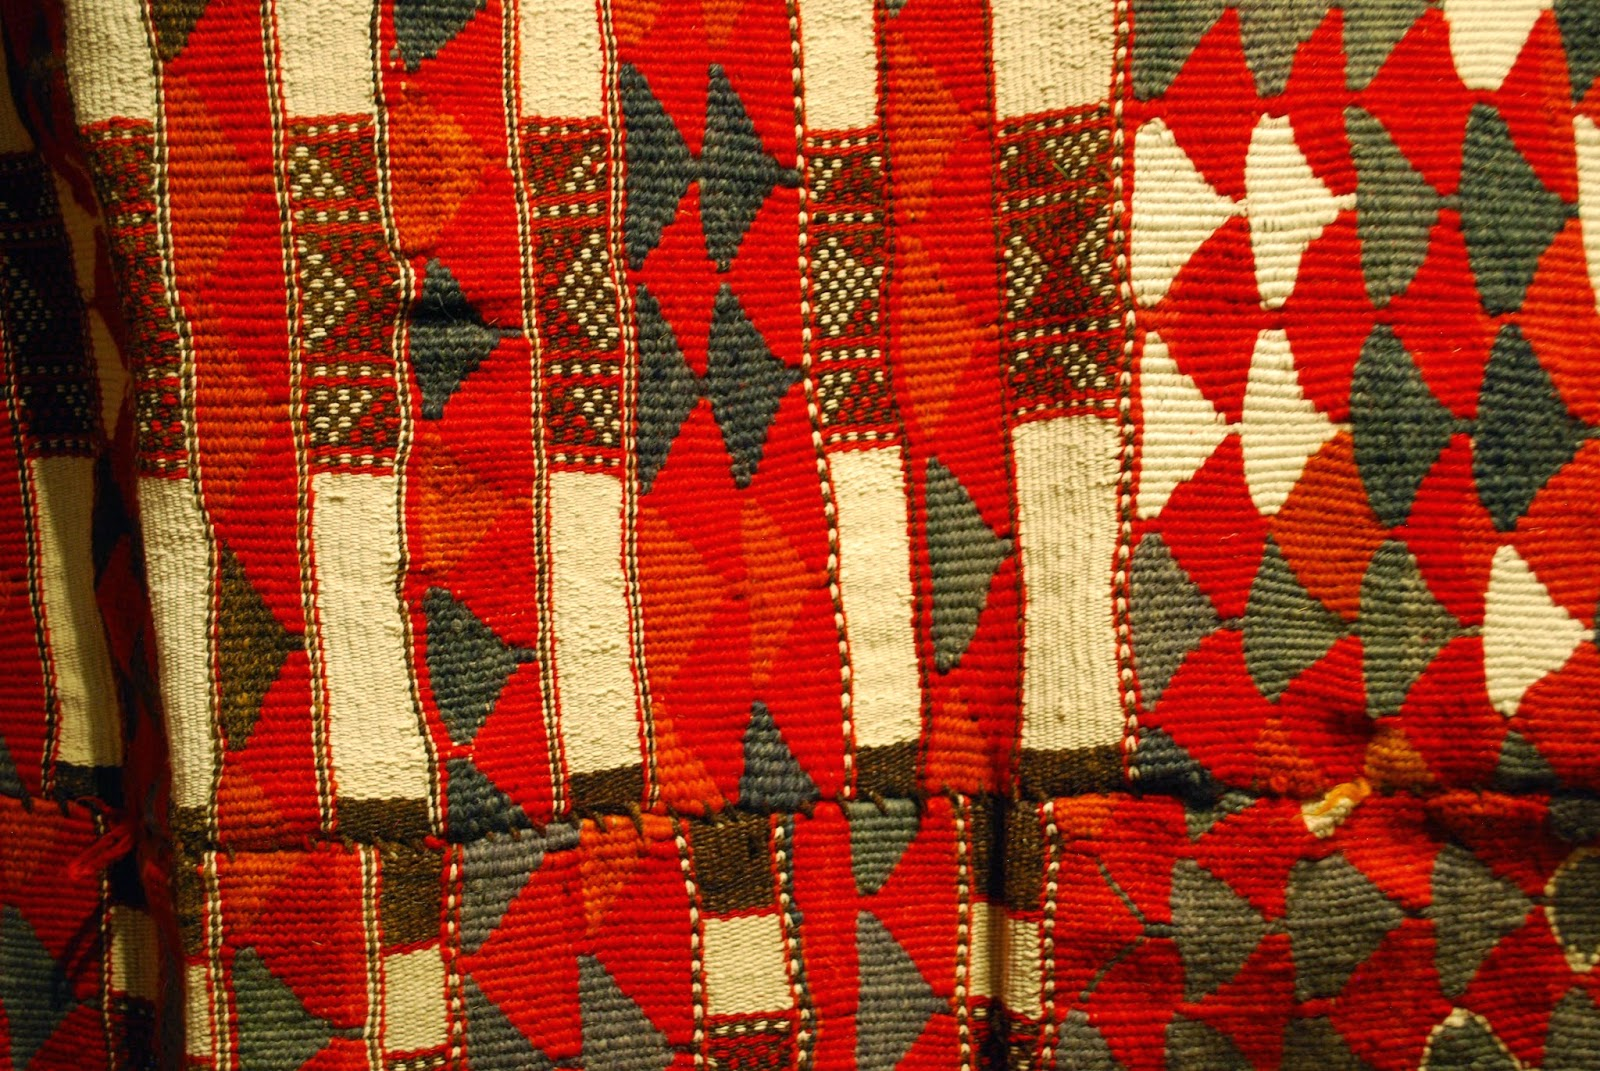 Make It A Wonderful Life Bedouin Textiles